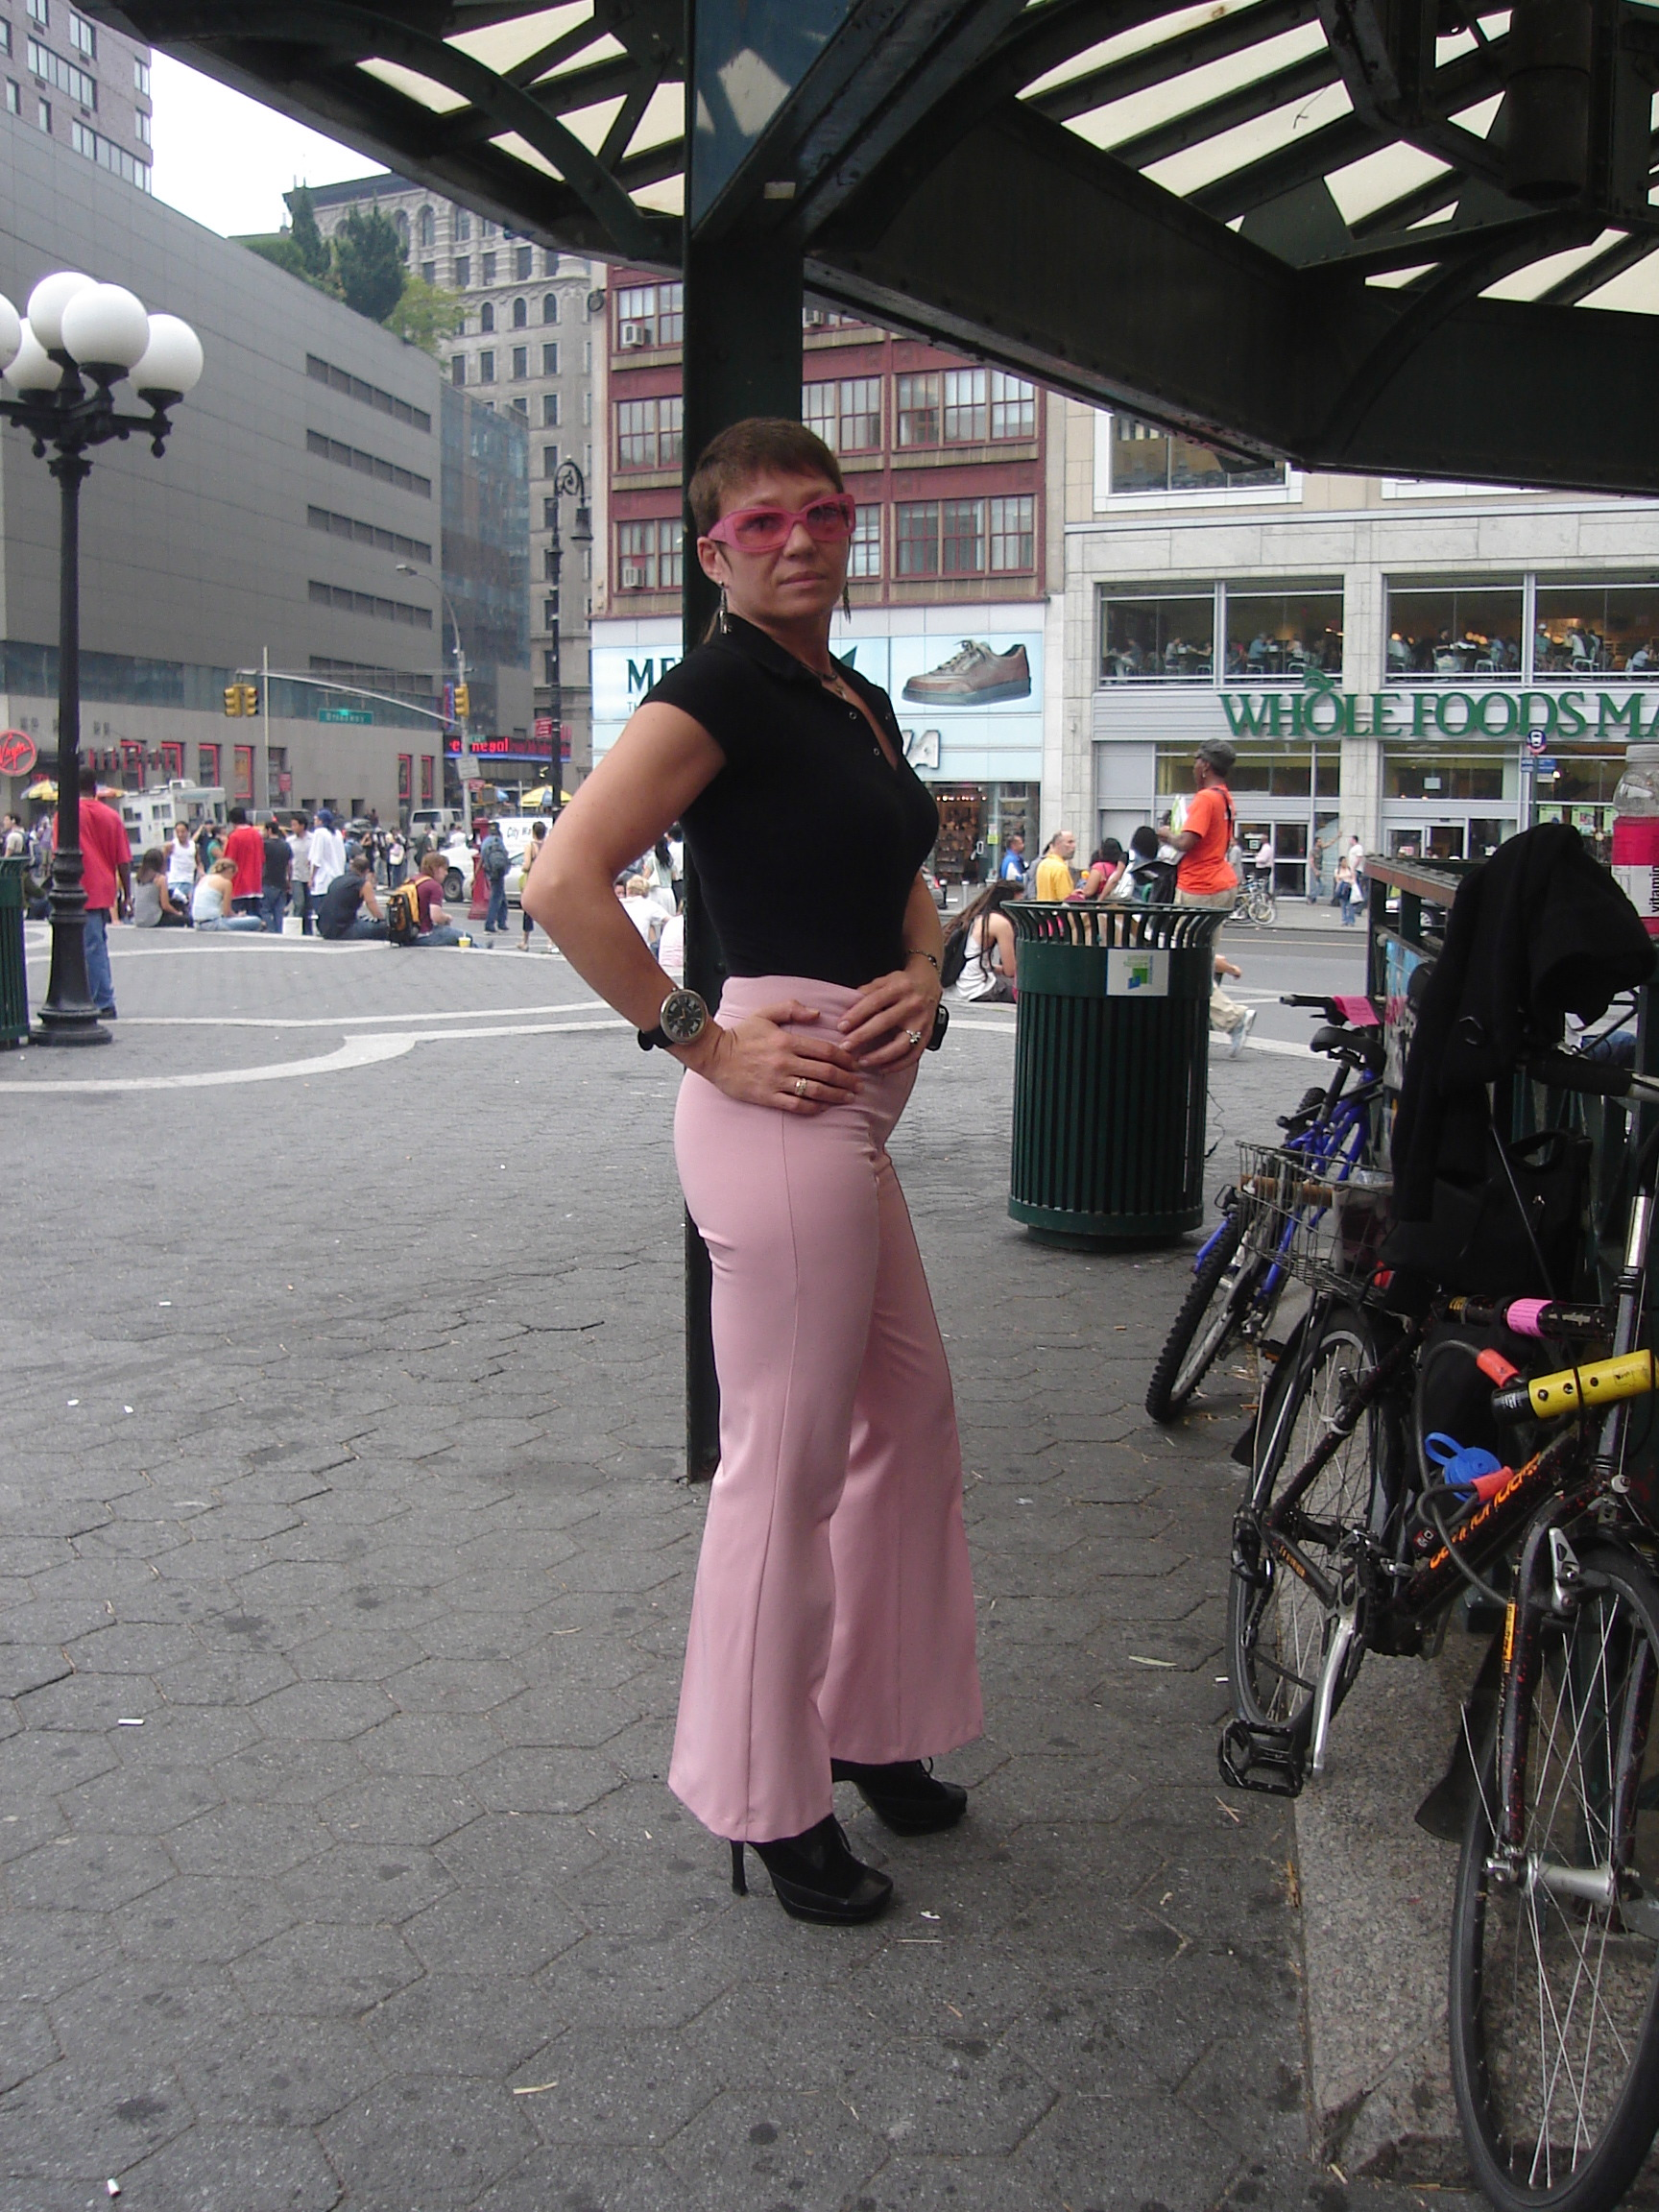 Woman in tight pink pants